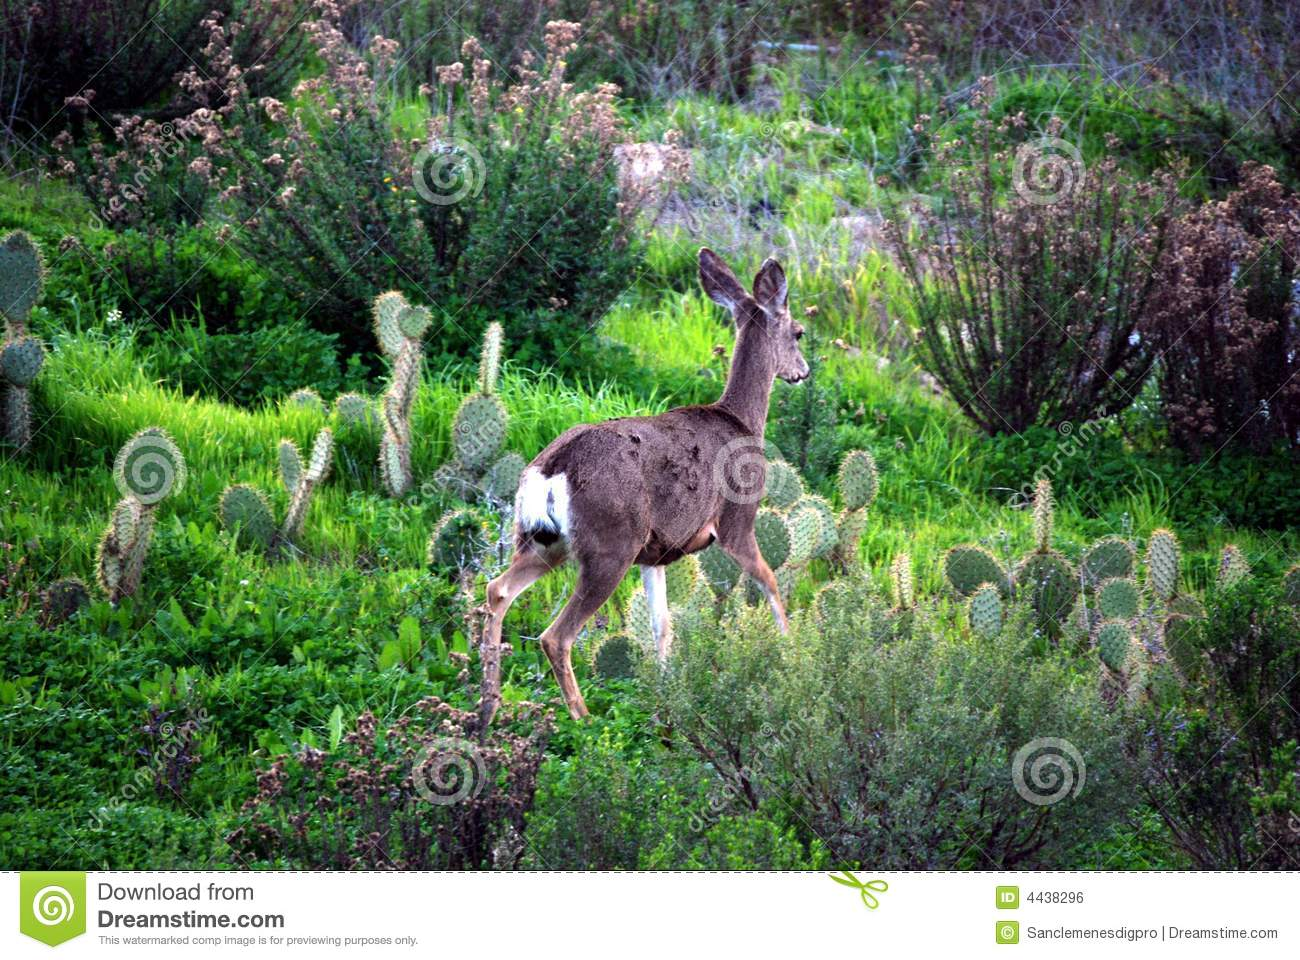 deer in natural habitat royalty free stock image image bridal bouquet clipart free bride & groom clipart free